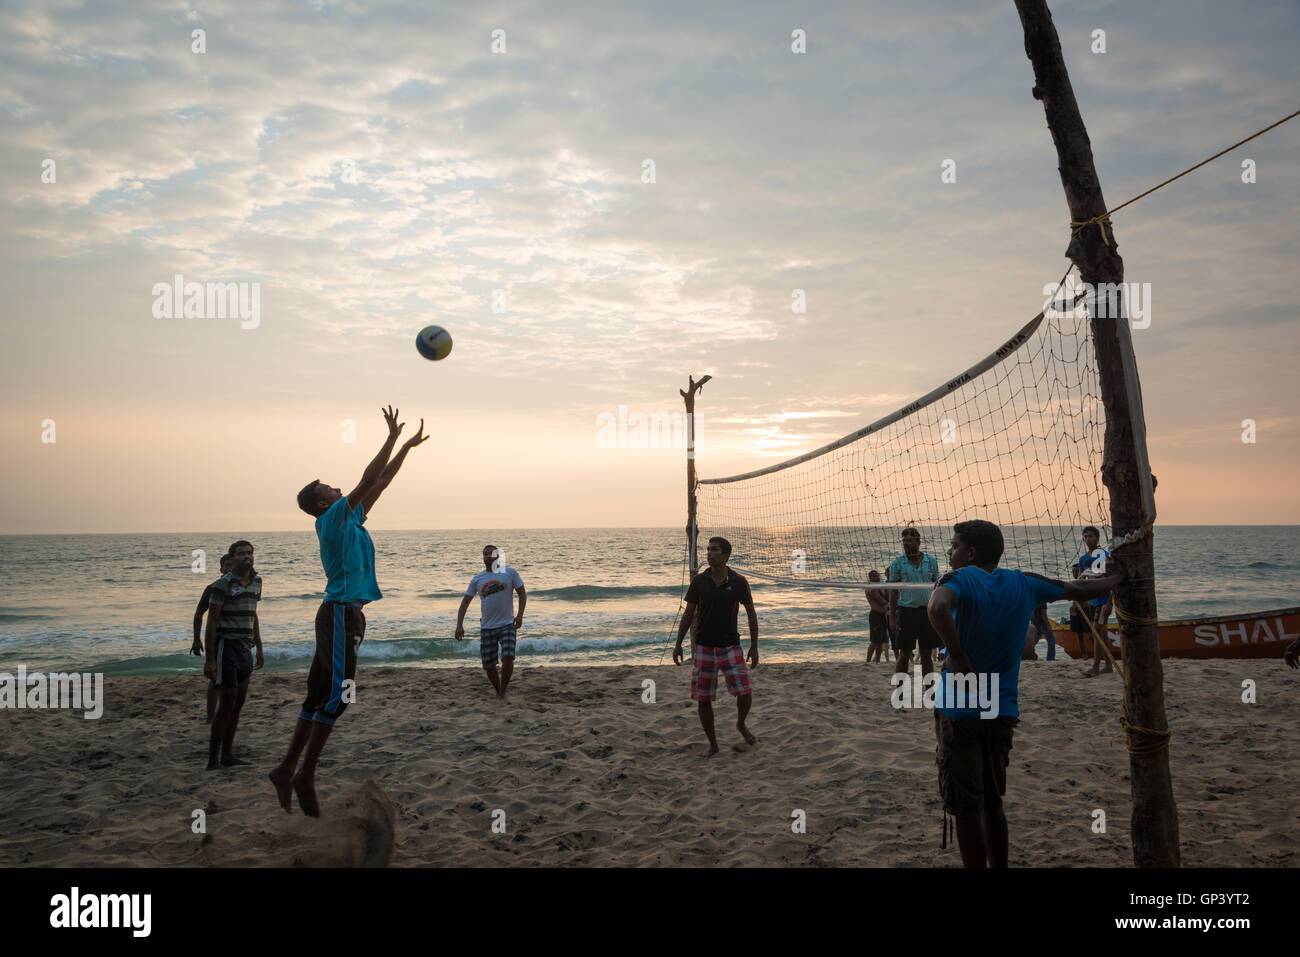 Kids playing volleyball on Varkala beach, Kerala, India - Stock Image